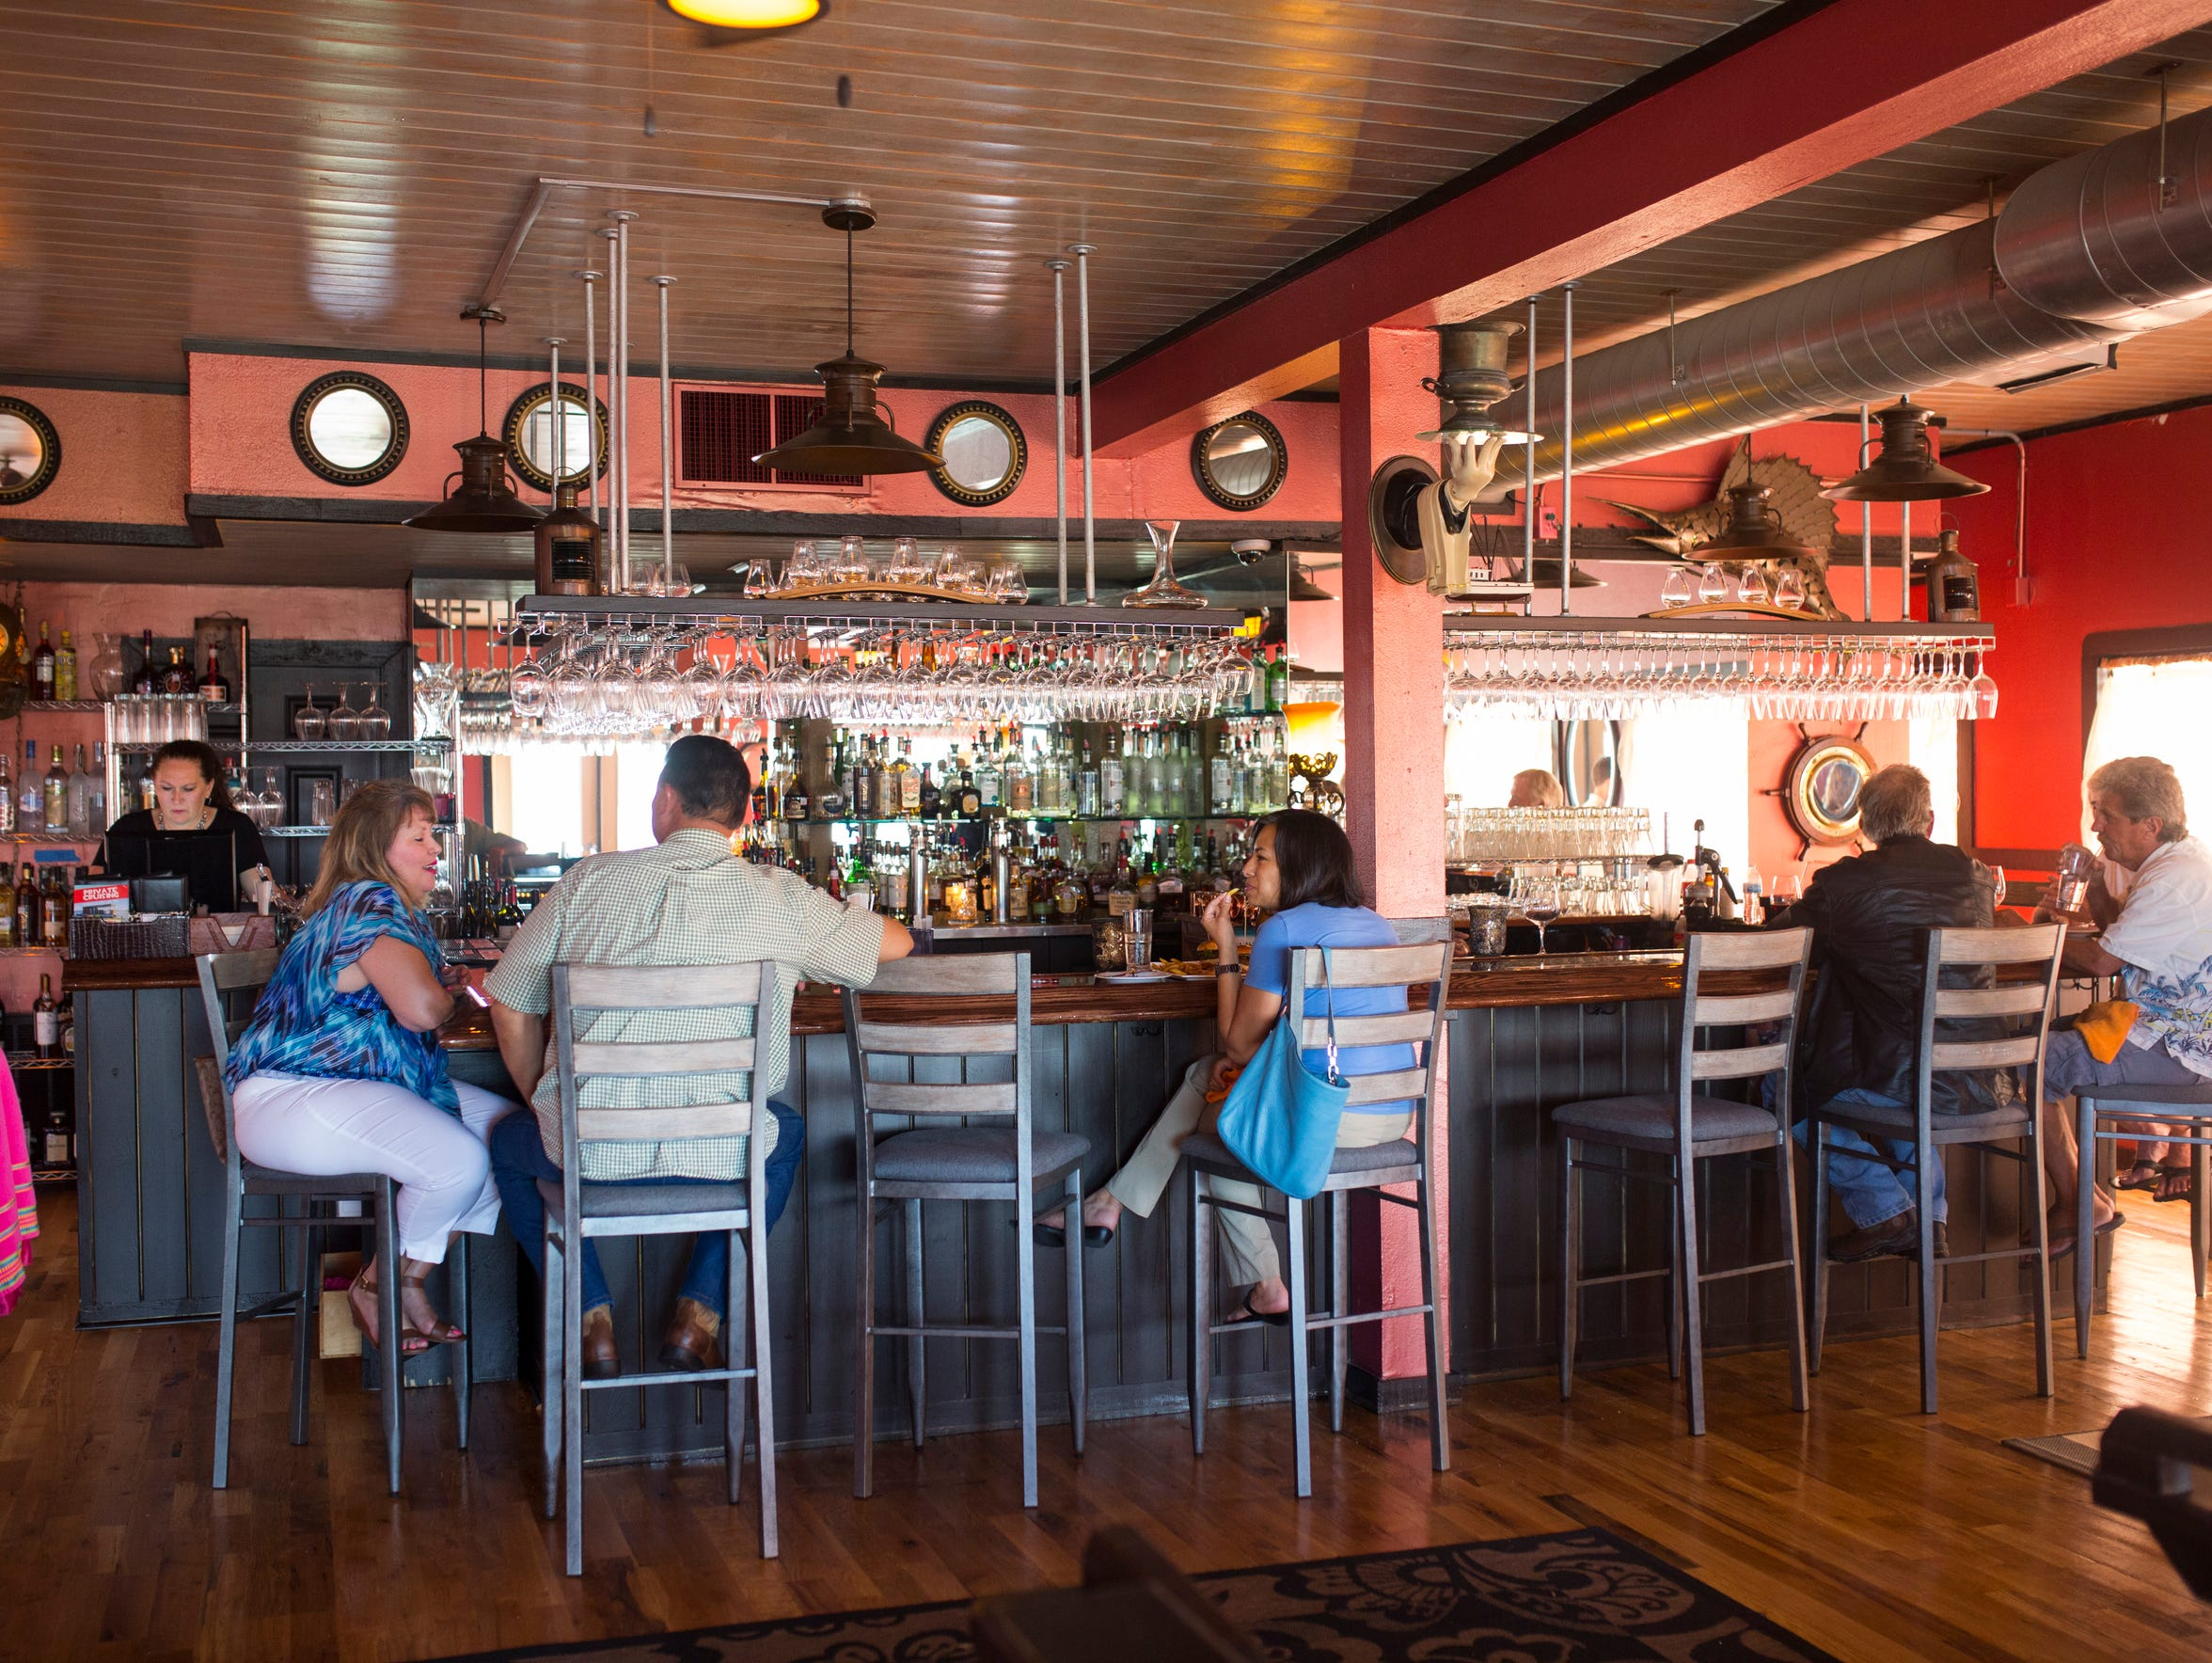 The La Barataria Restaurant and Wine Bar in Port Aransas